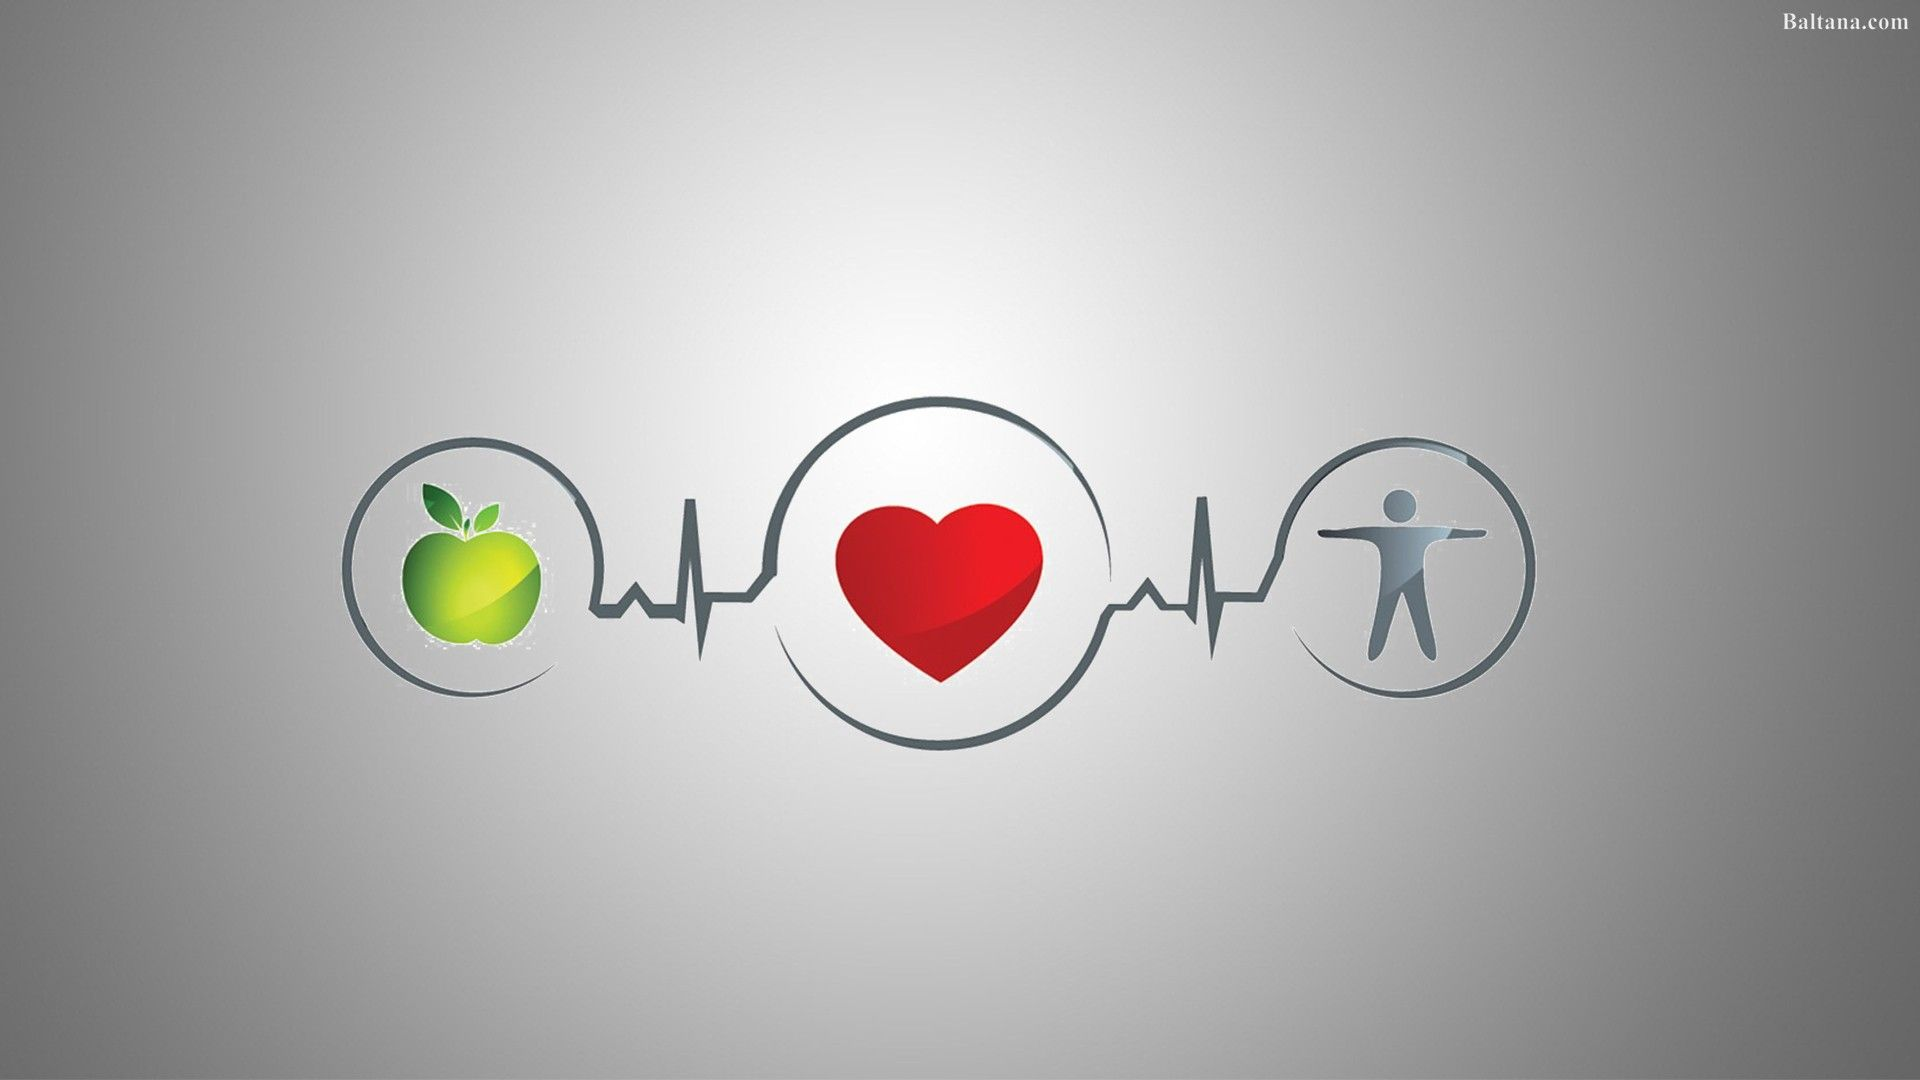 Health Wallpapers   Top Health Backgrounds   WallpaperAccess 1920x1080